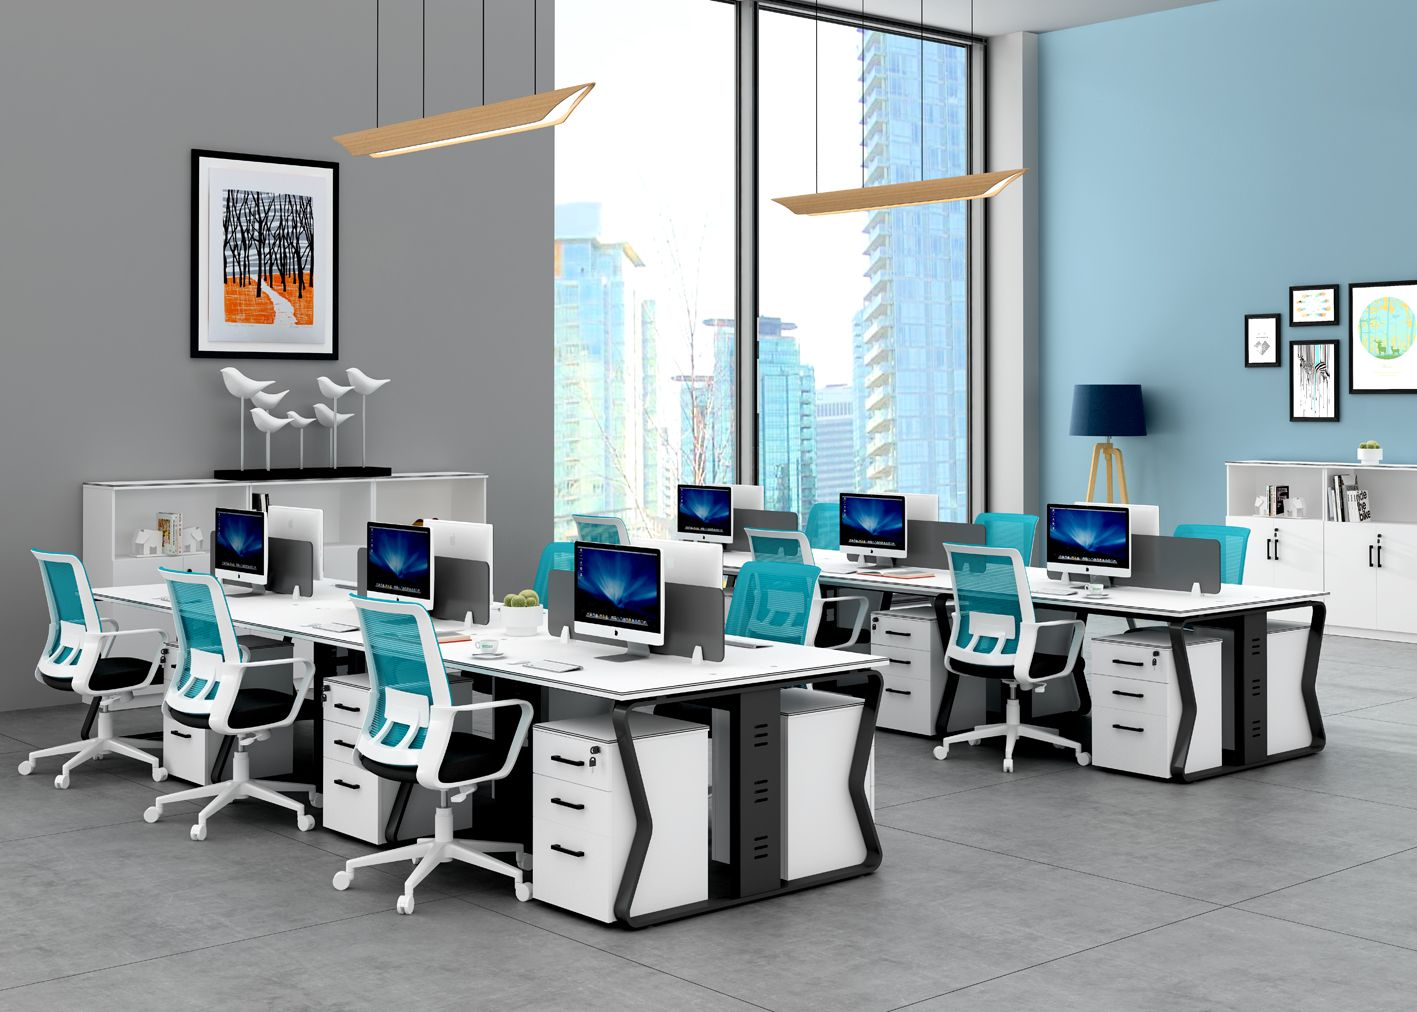 Customized Office Desk Office Workstations Office Furniture Manufacturers Workstation